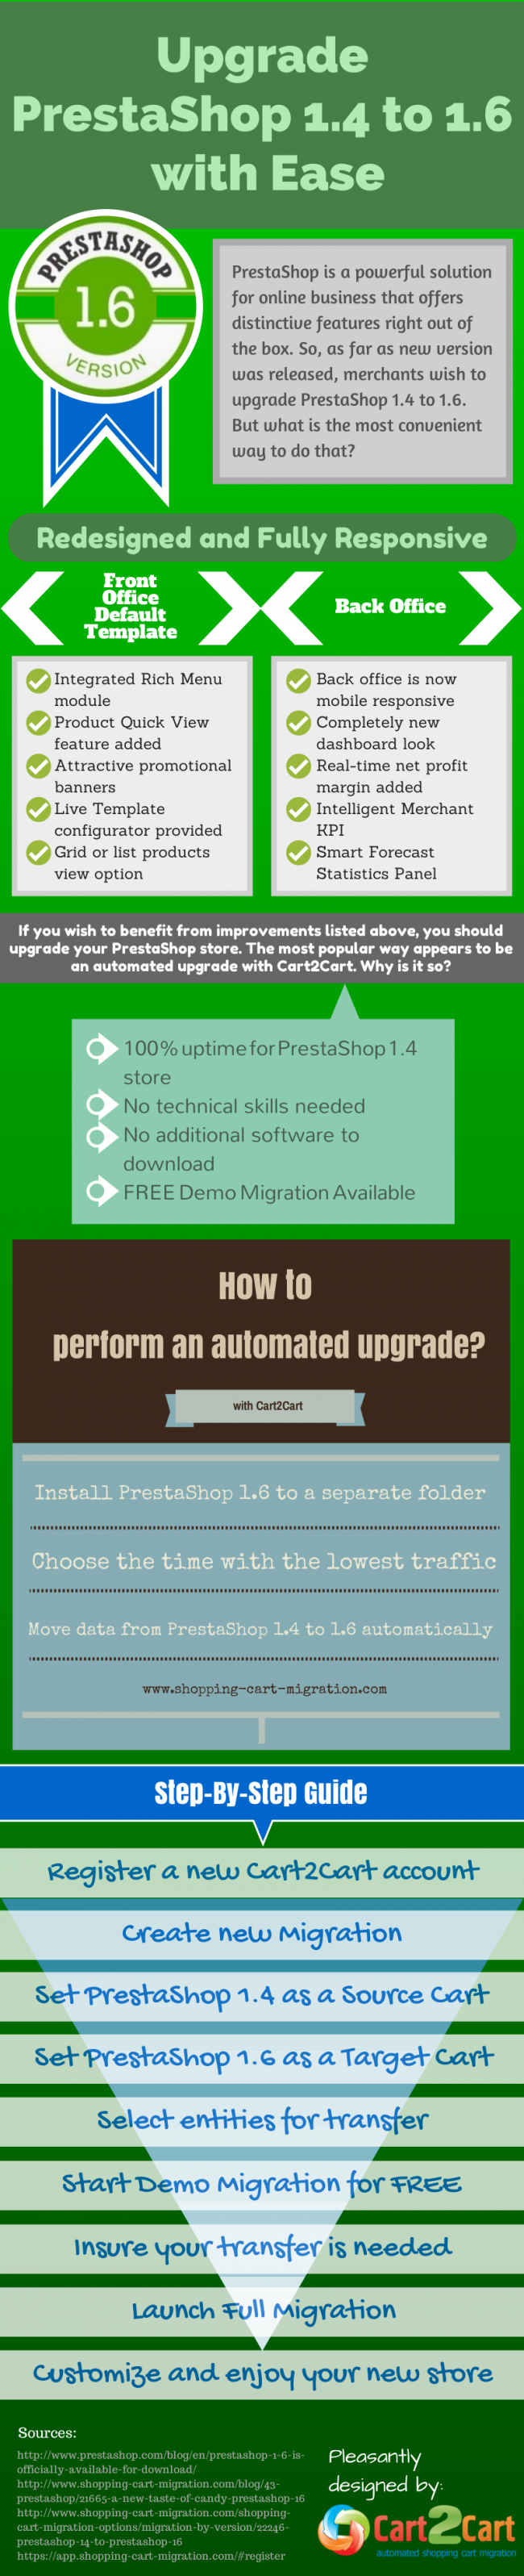 Upgrade PrestaShop 1.4 to 1.6 with Ease